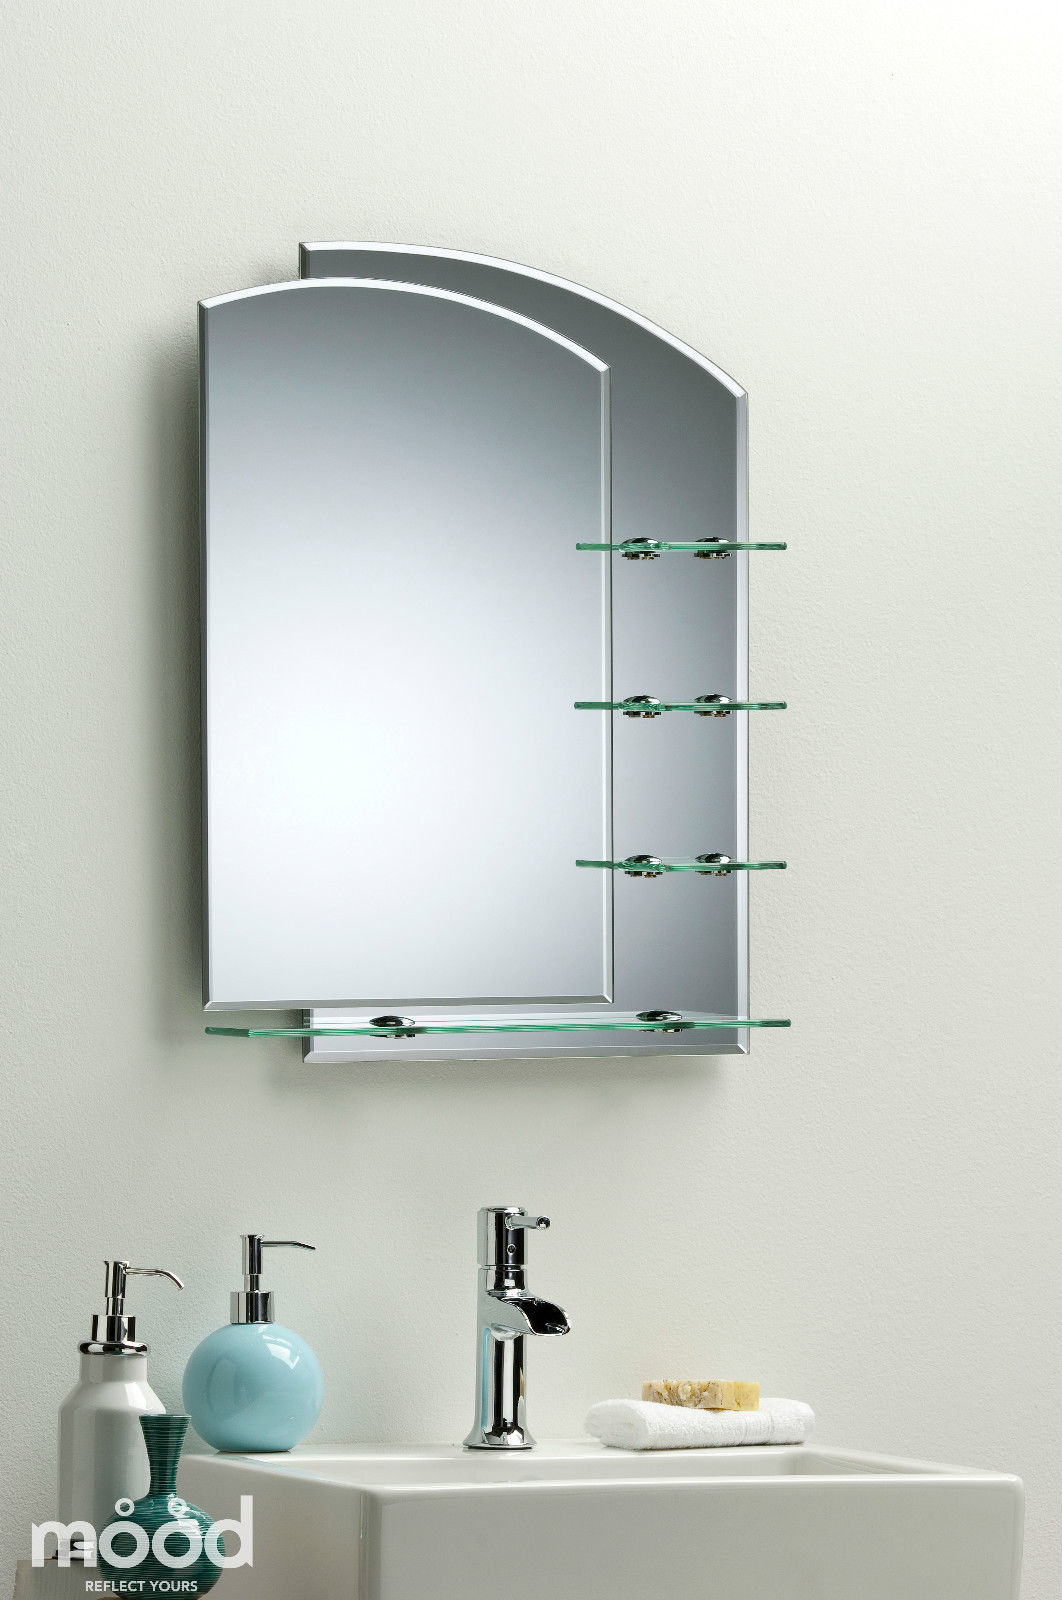 Bathroom Mirror Modern Stylish With Shelves Frameless Wall Mount Plain Shelf Ebay